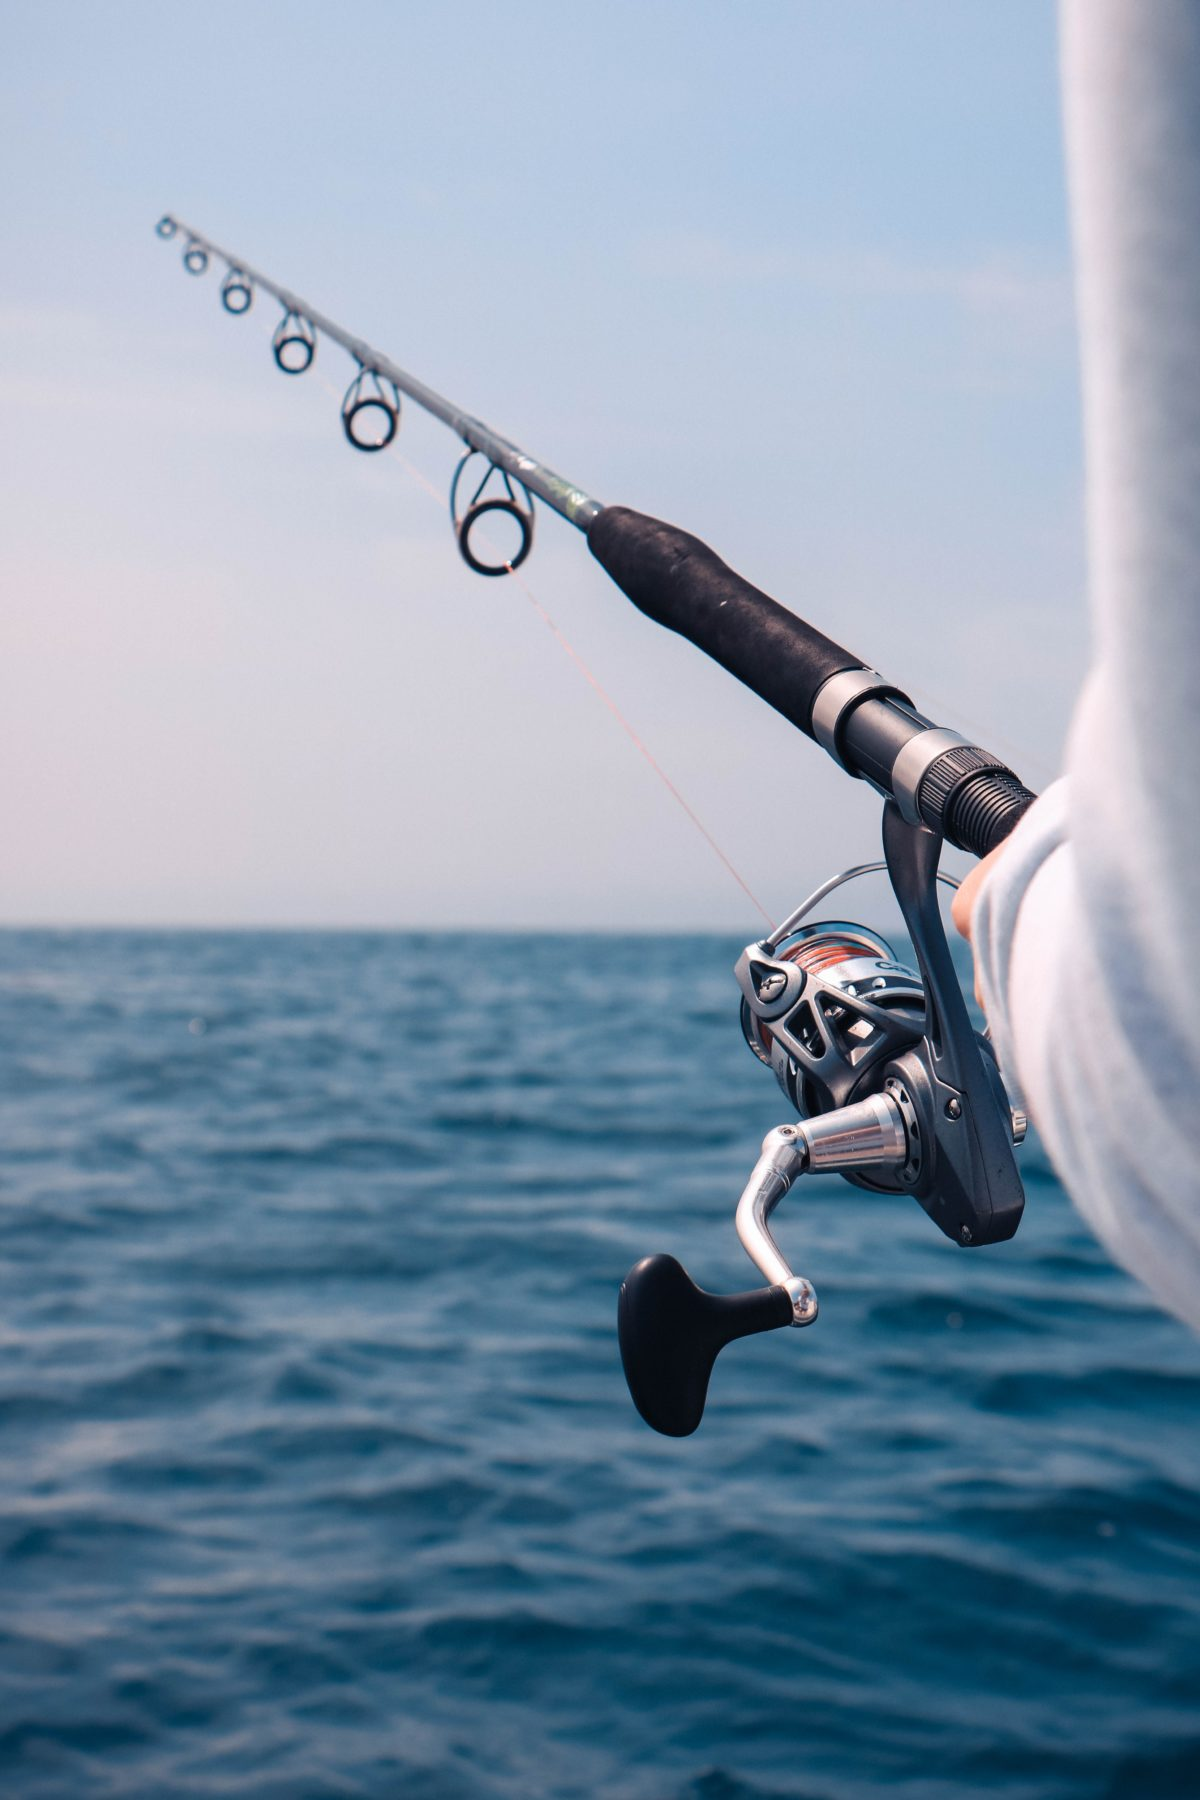 Fishing Products To Catch More Fish